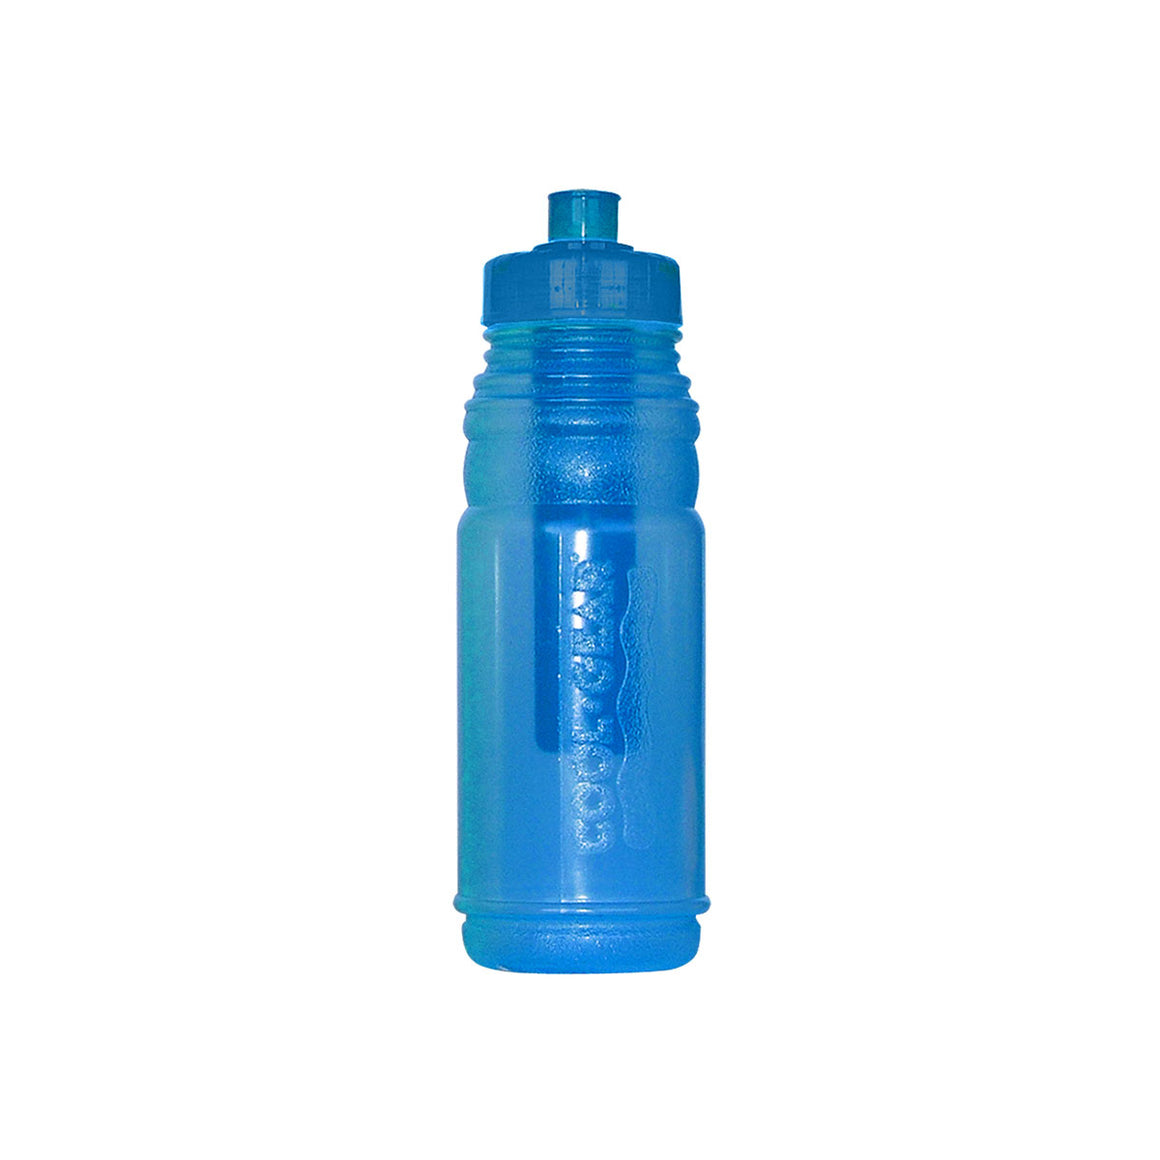 Blue Relay 22 Oz Water Bottle at Cool Gear Water Bottles